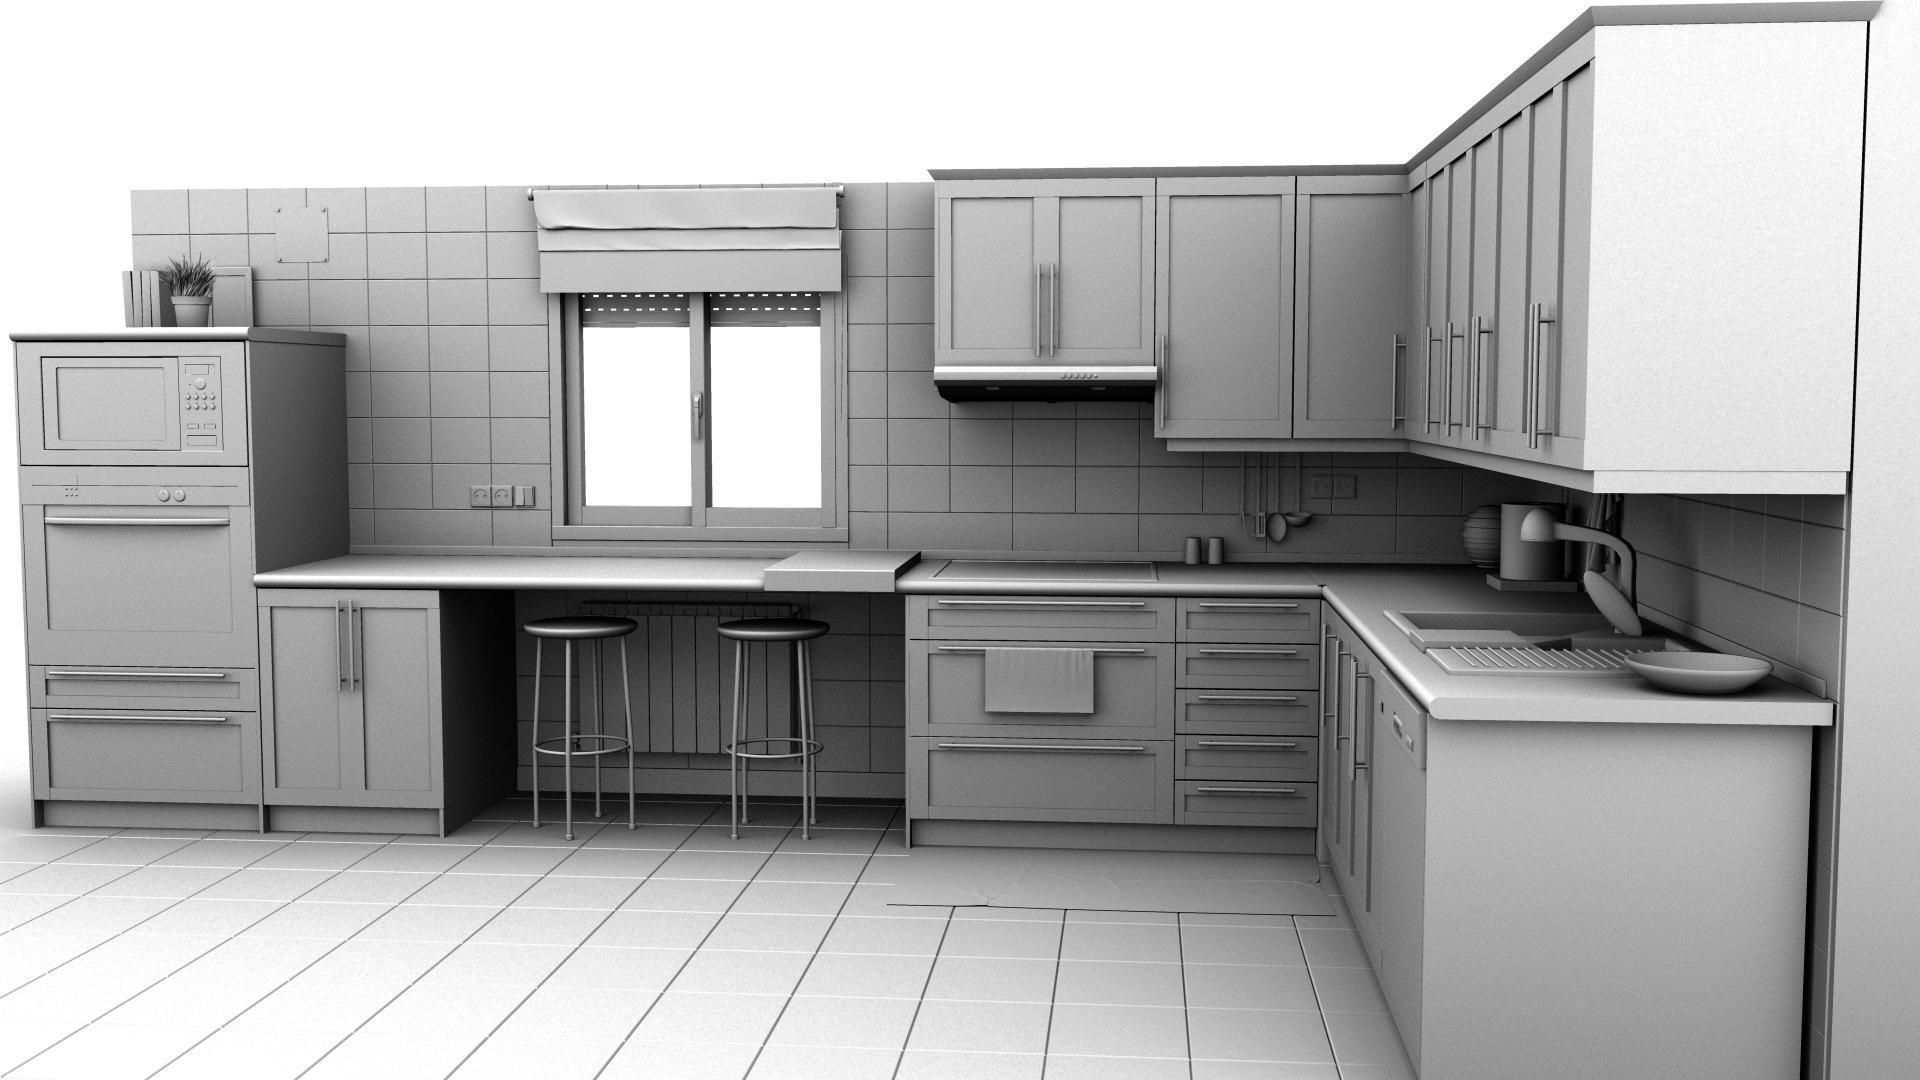 Kitchen hd res 3d model obj fbx ma mb mtl for Kitchen modeler